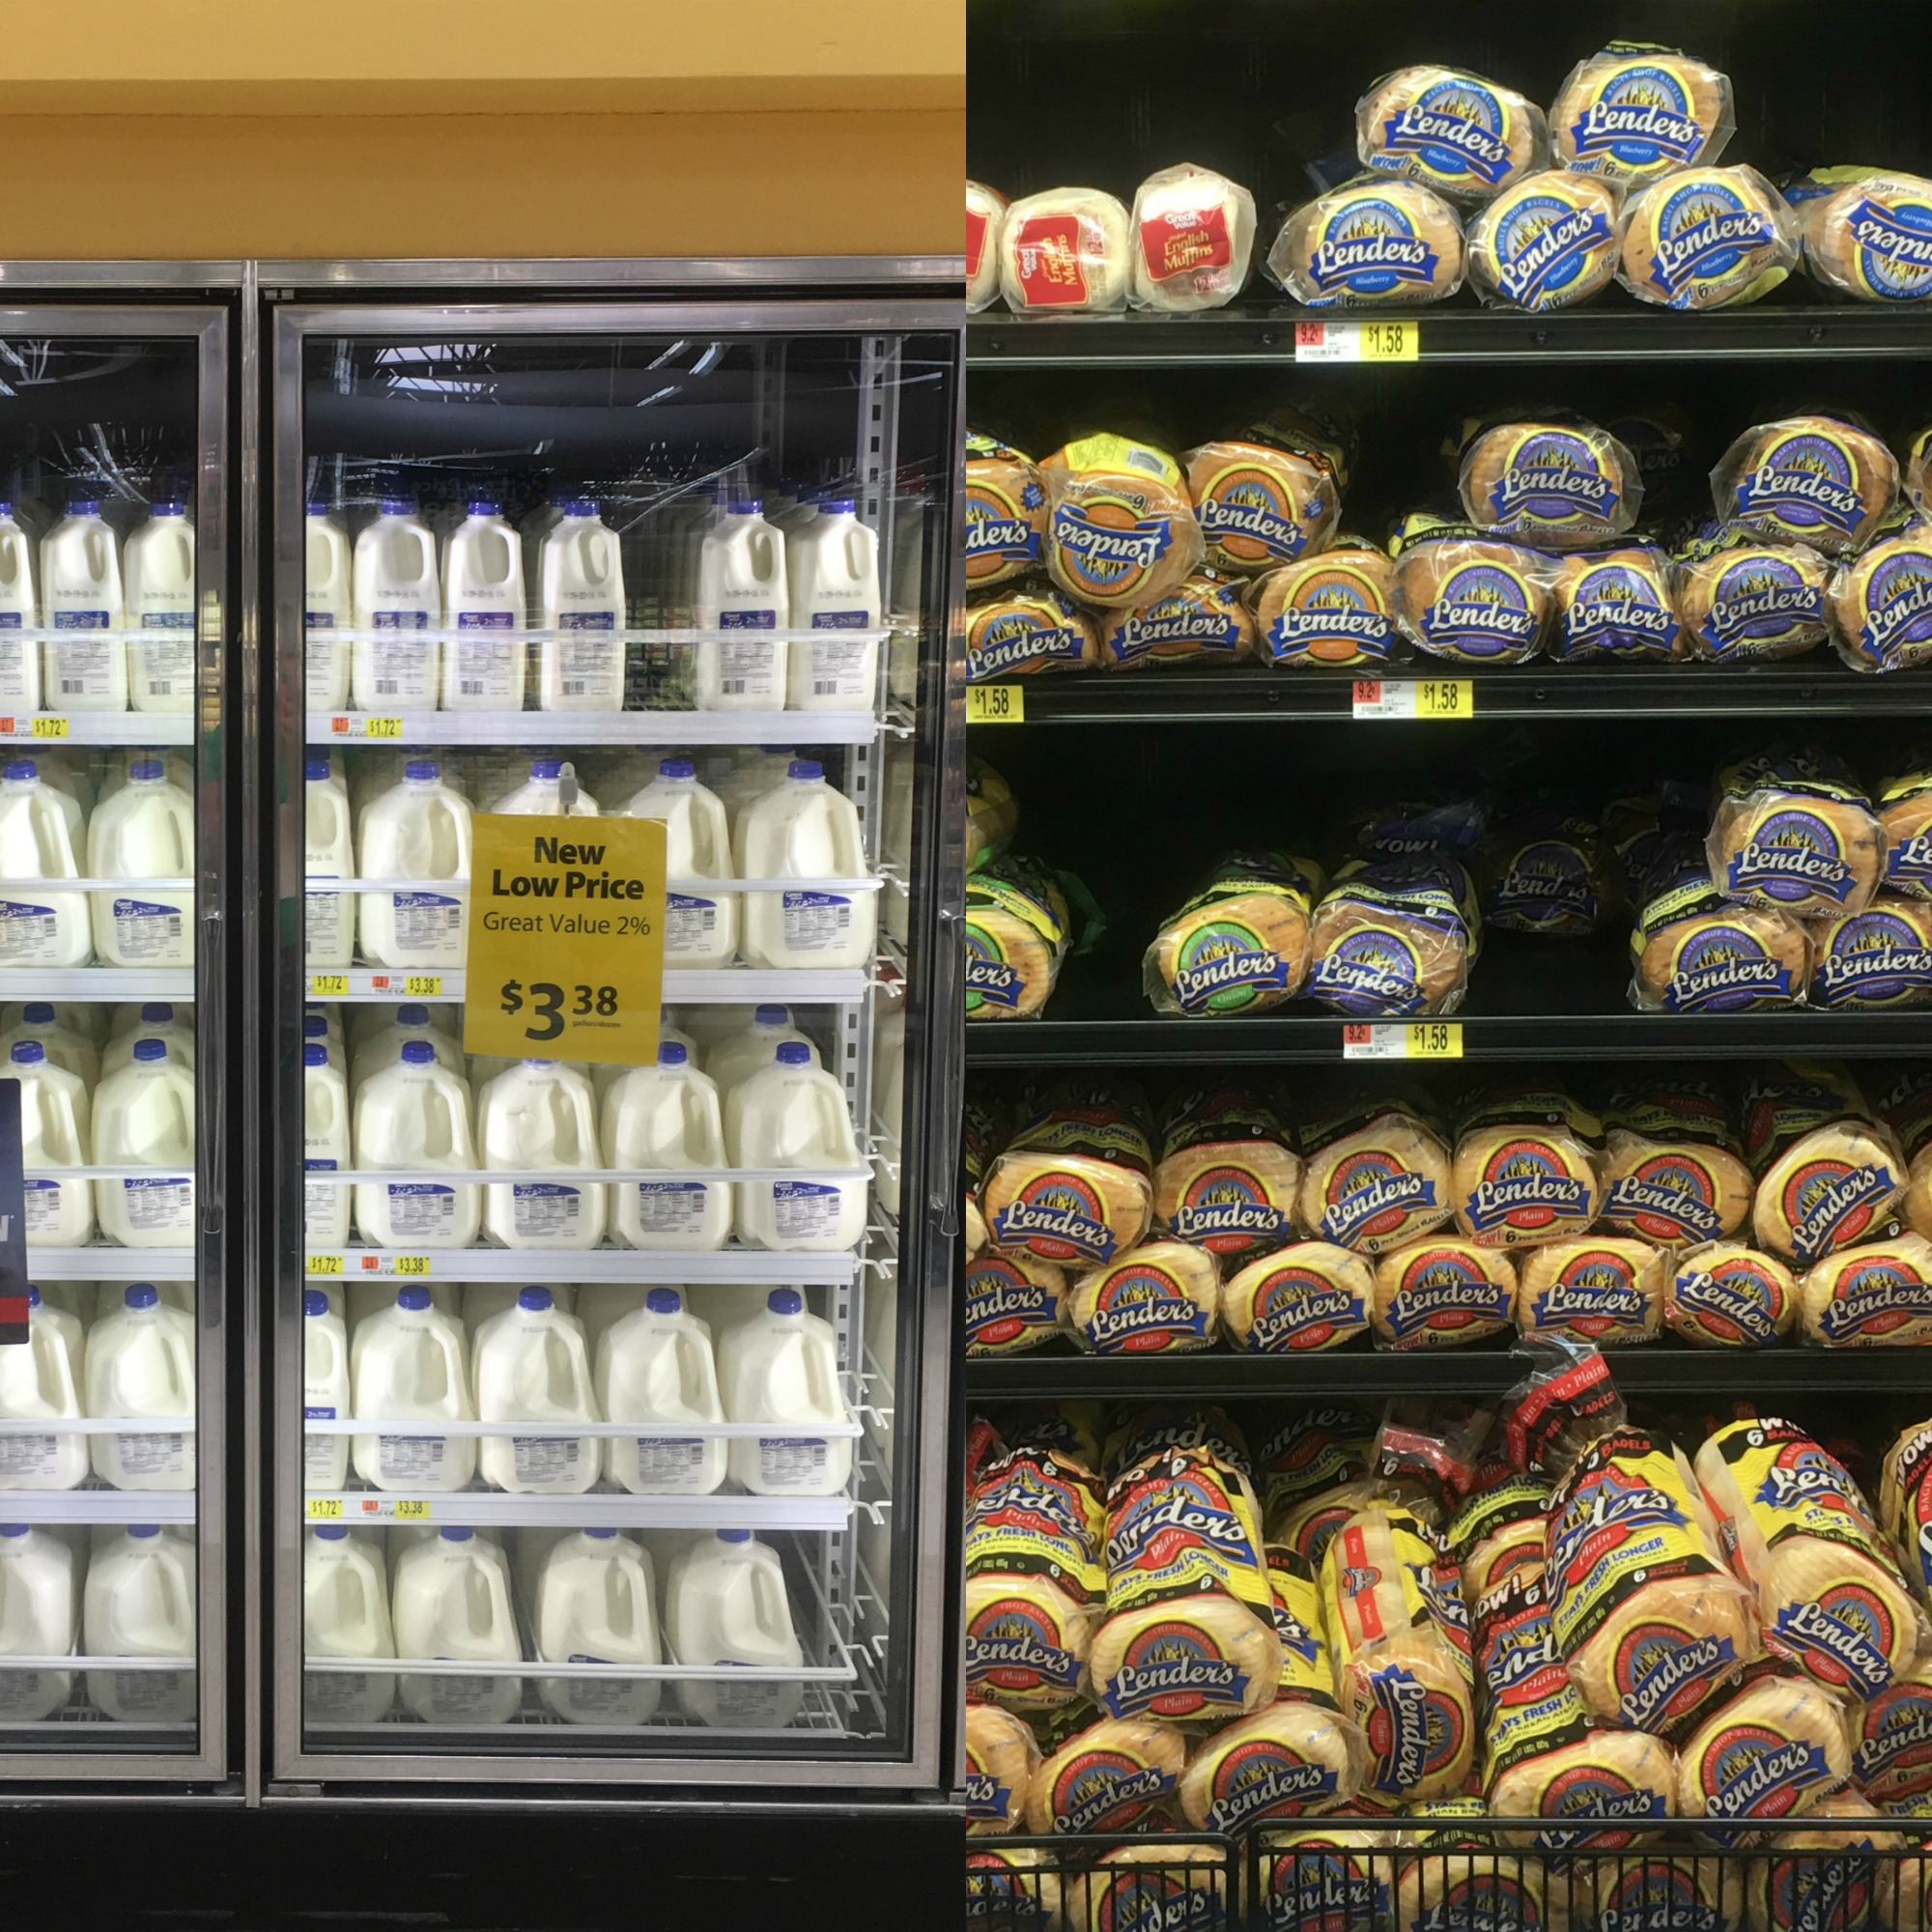 Walmart has everything you need to Build A Better Breakfast #BetterBreakfast